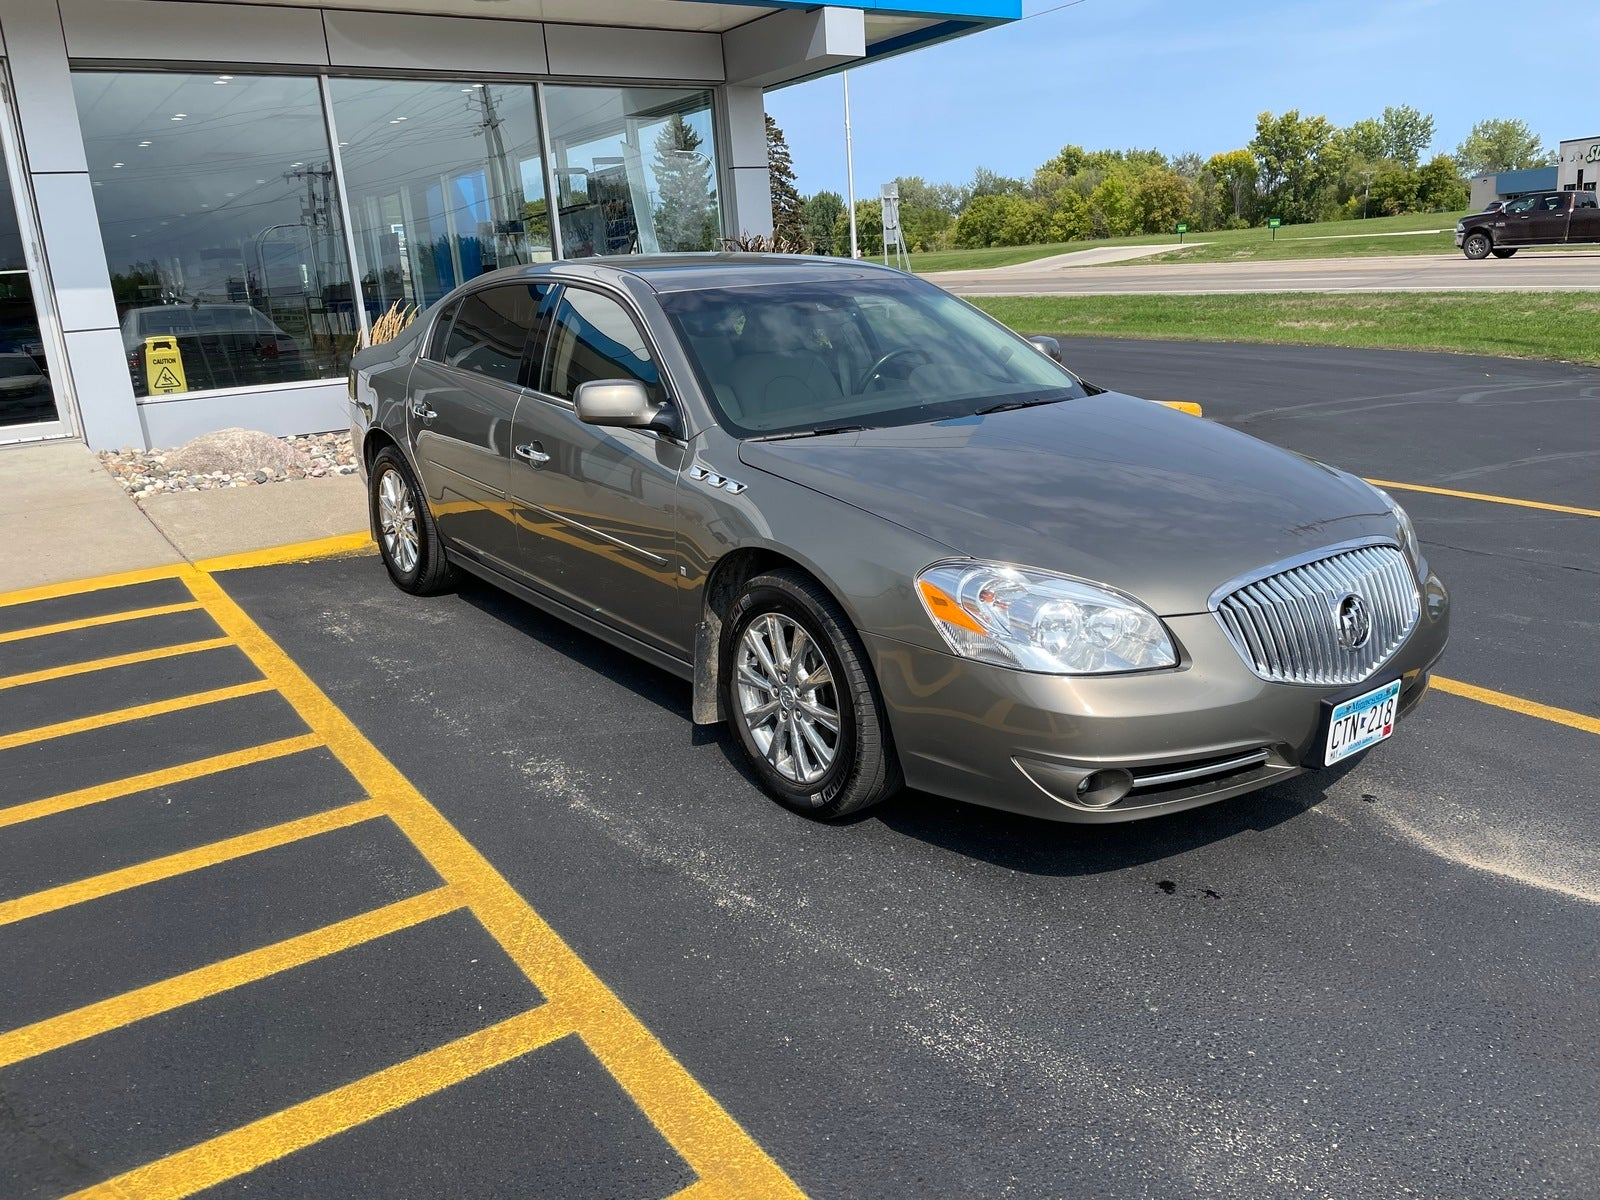 Used 2010 Buick Lucerne CXL with VIN 1G4HE5EM0AU104538 for sale in Fergus Falls, Minnesota